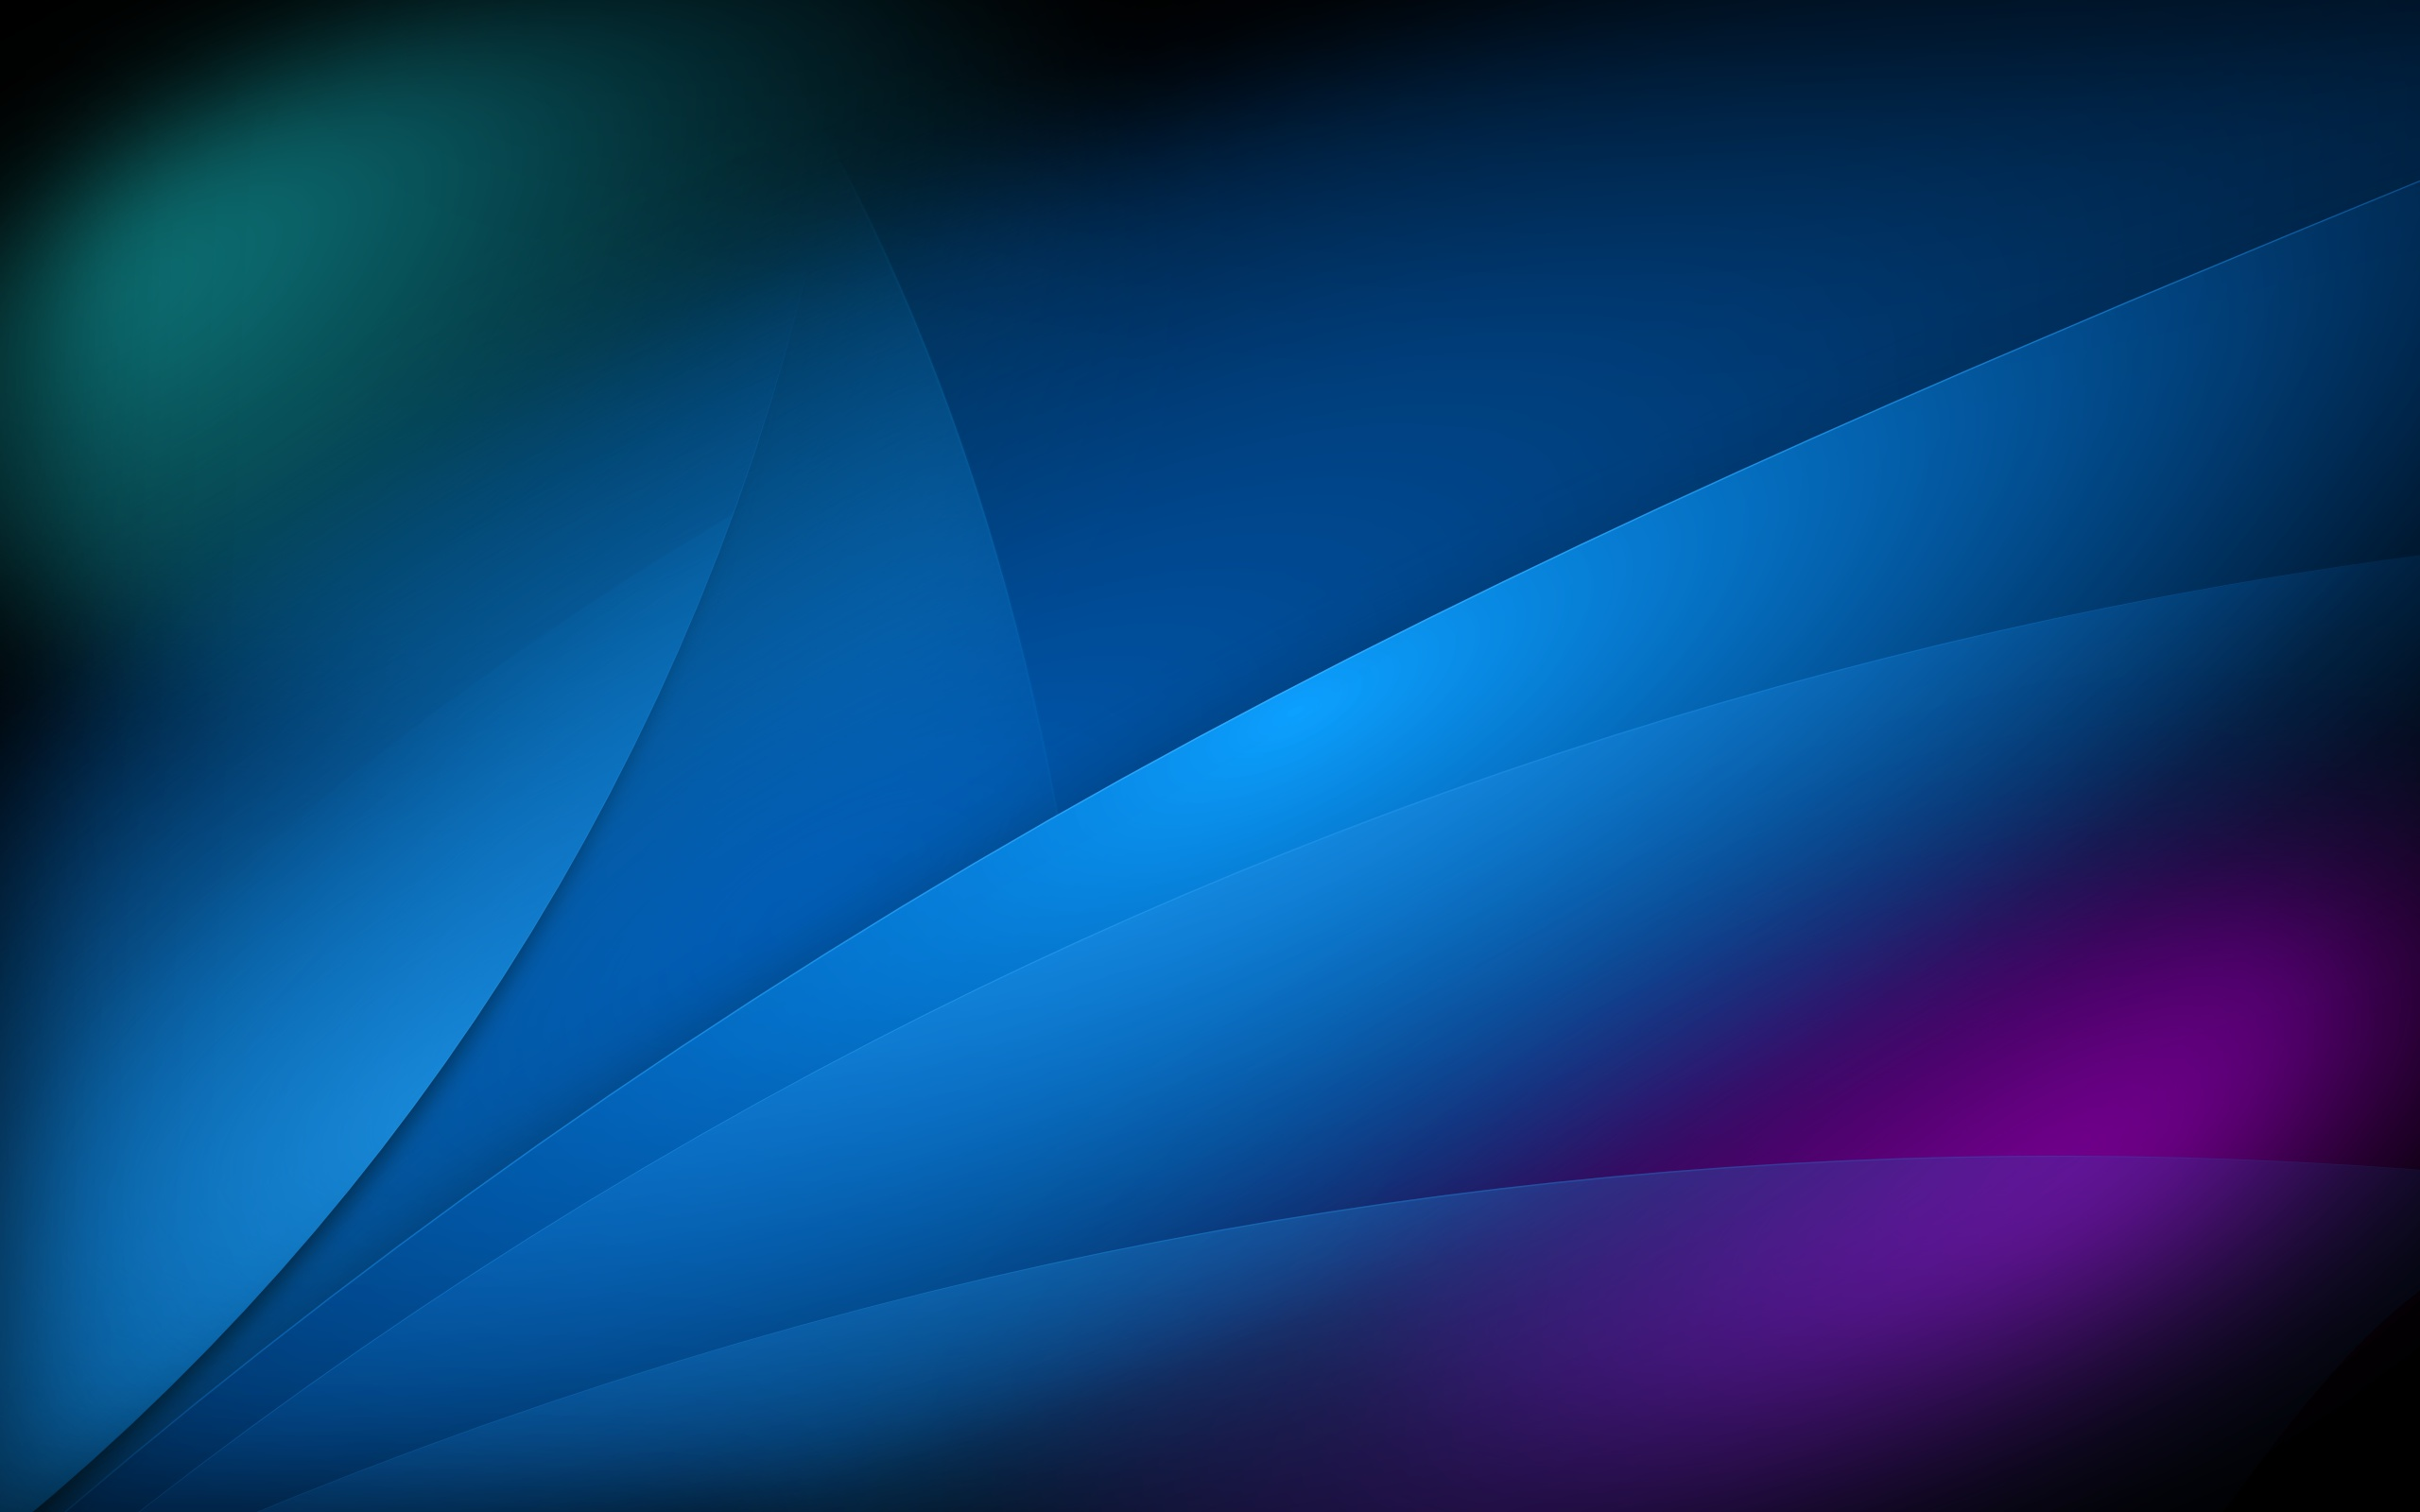 Abstract Blue 2560x1600